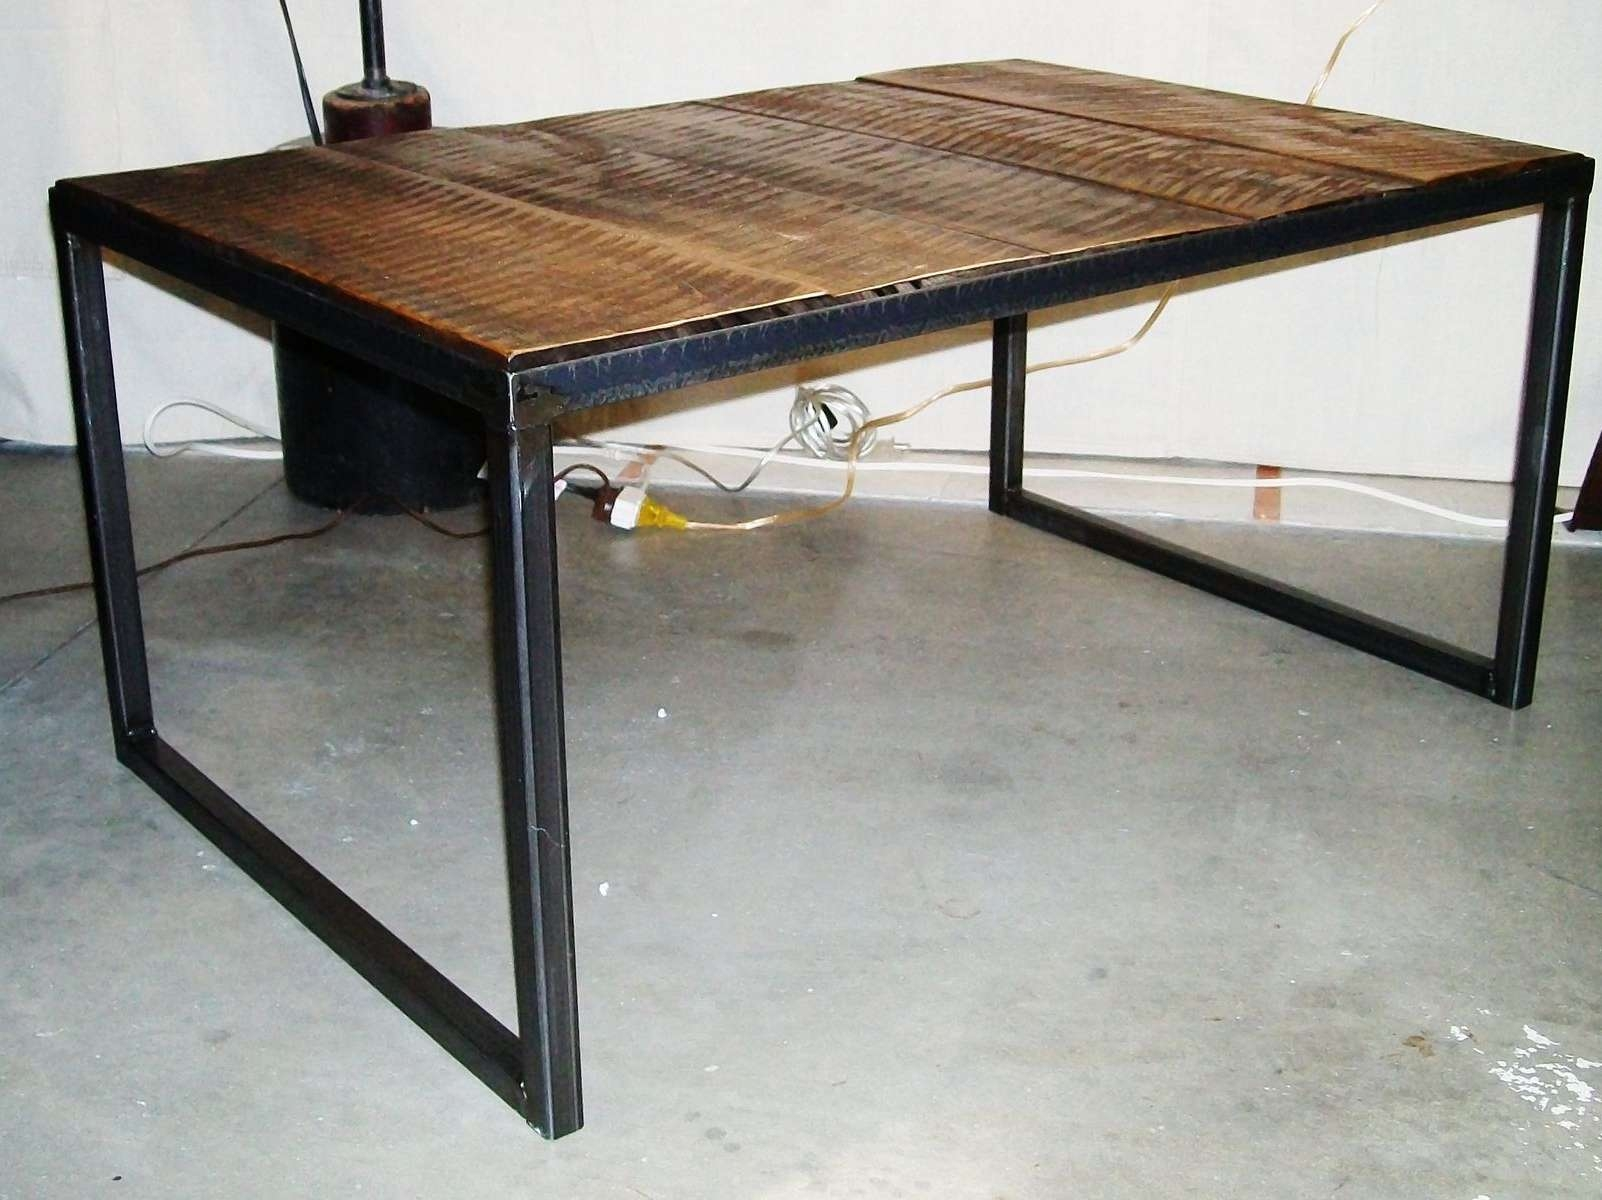 Handmade Industrial Wood & Steel Coffee Tablelucah Designs Regarding Most Popular Wood And Steel Coffee Table (Gallery 16 of 20)